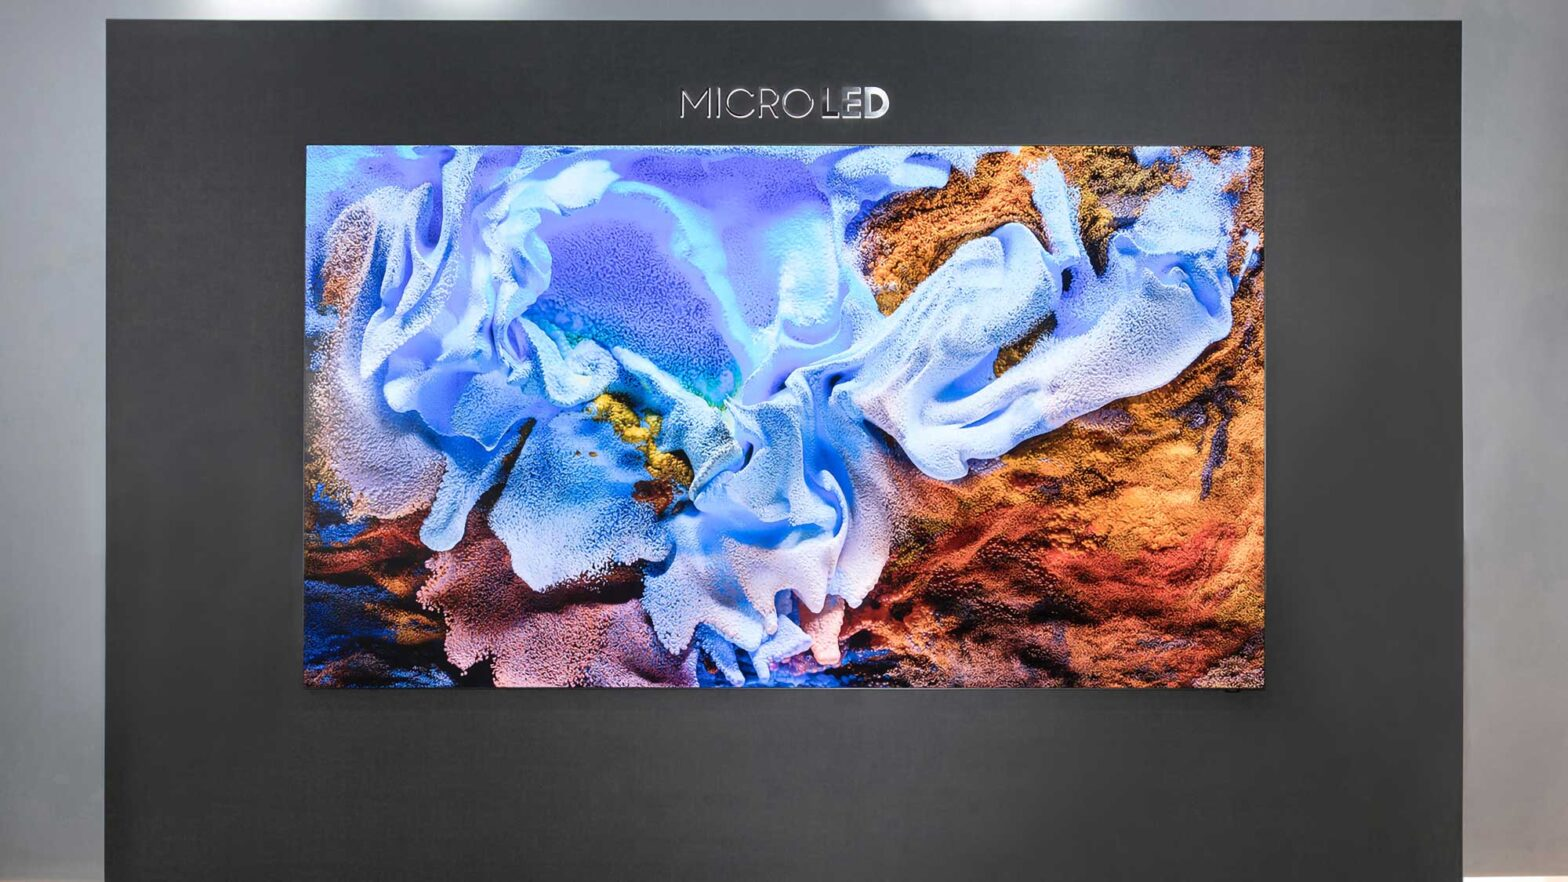 Samsung 110-inch 4K MicroLED TV